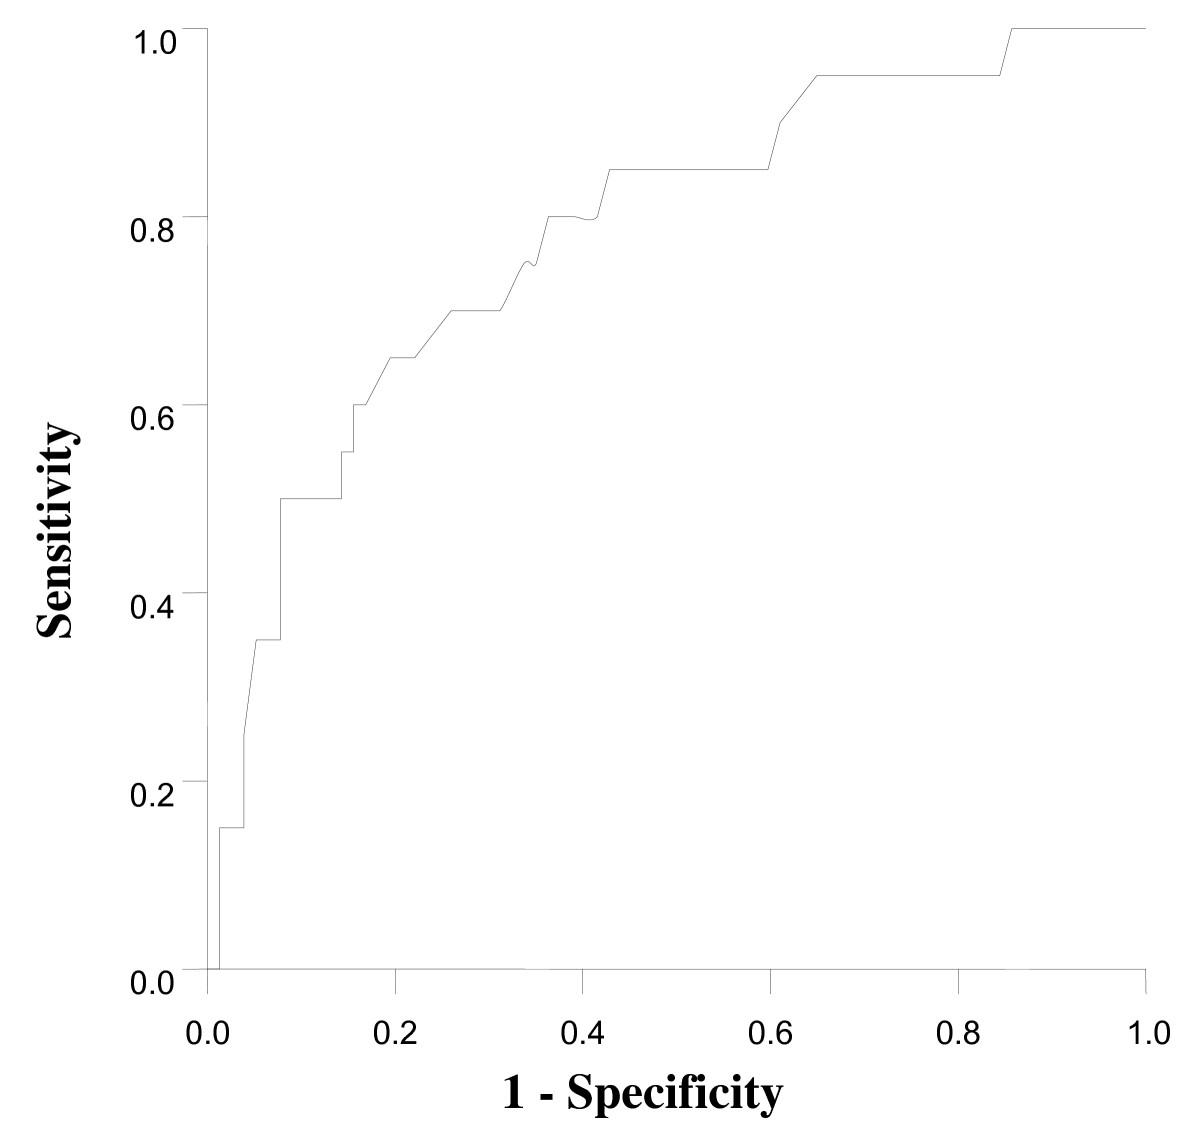 http://static-content.springer.com/image/art%3A10.1186%2F1477-7819-7-63/MediaObjects/12957_2009_Article_600_Fig5_HTML.jpg